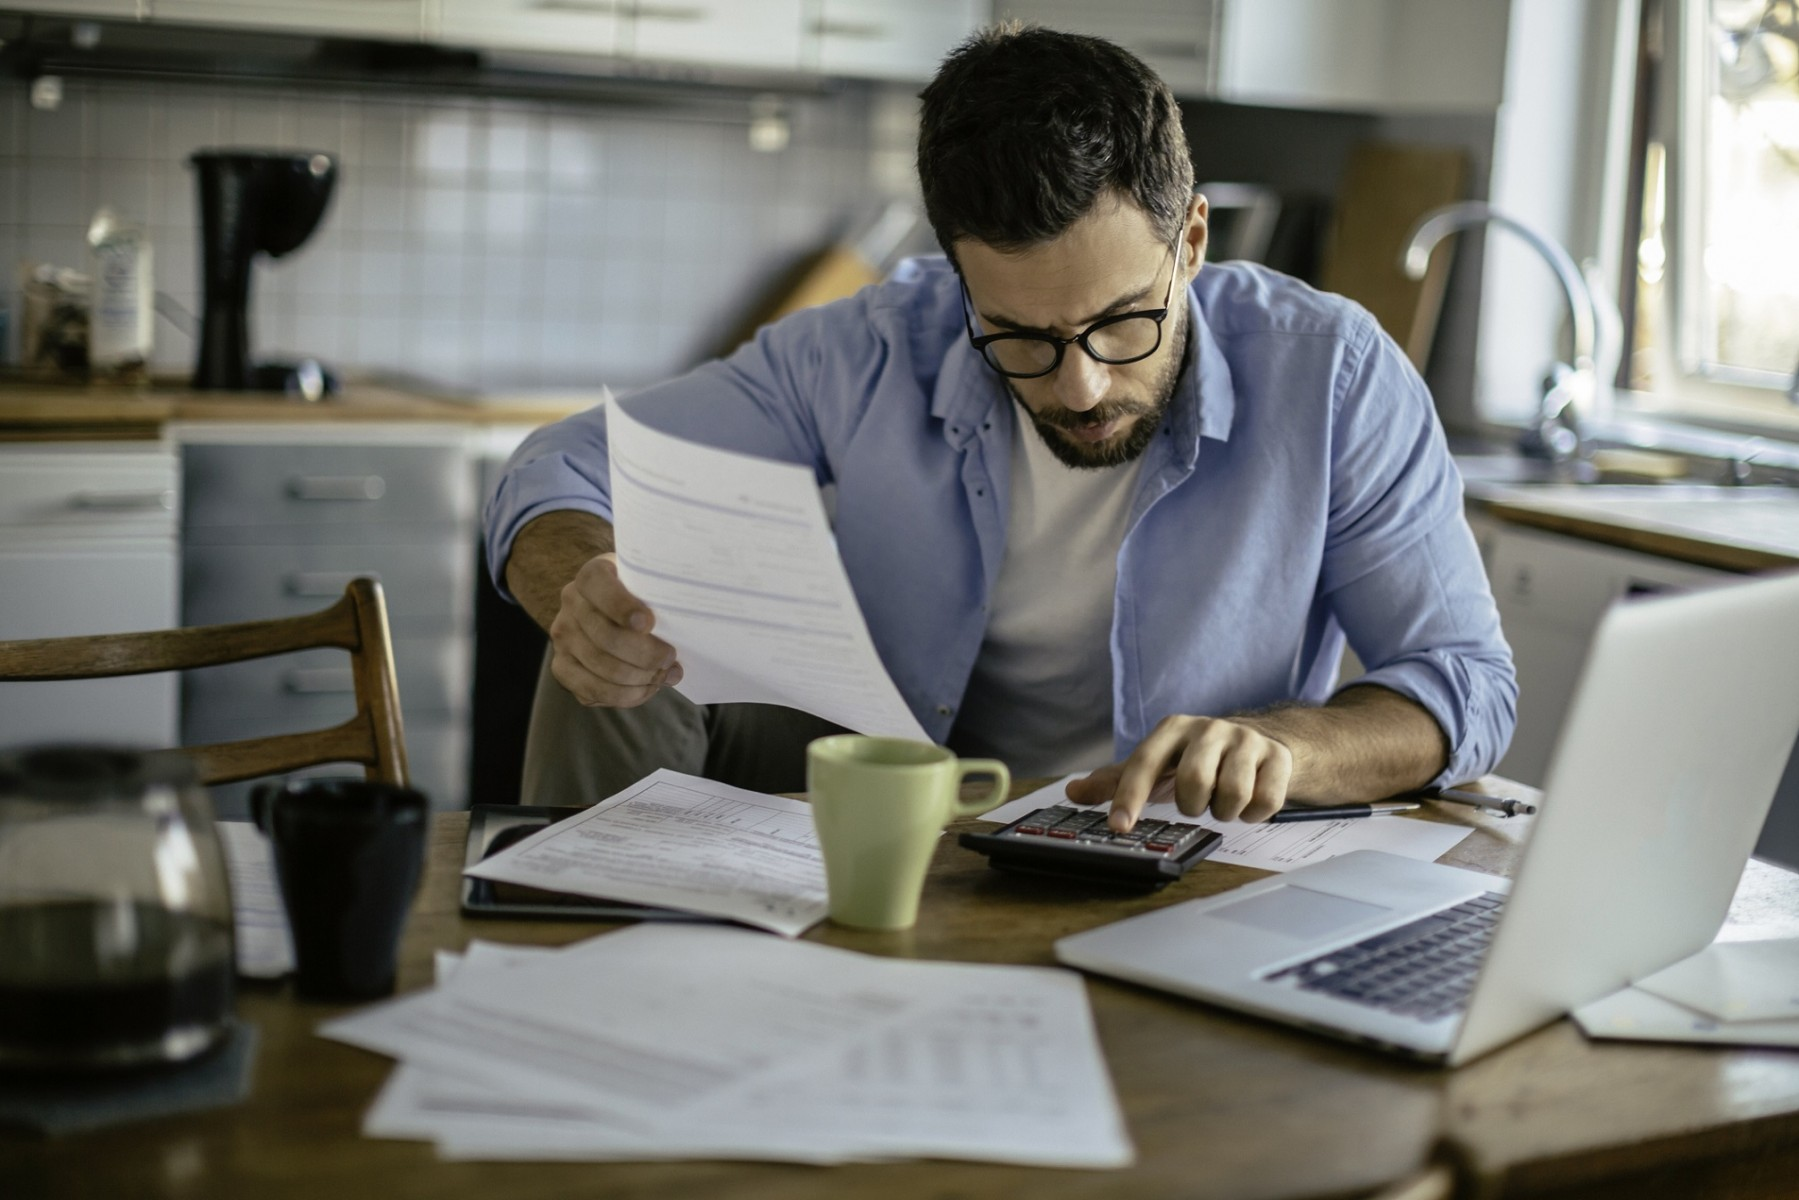 Husbands Still Seen as the Experts on Their Household's Finances